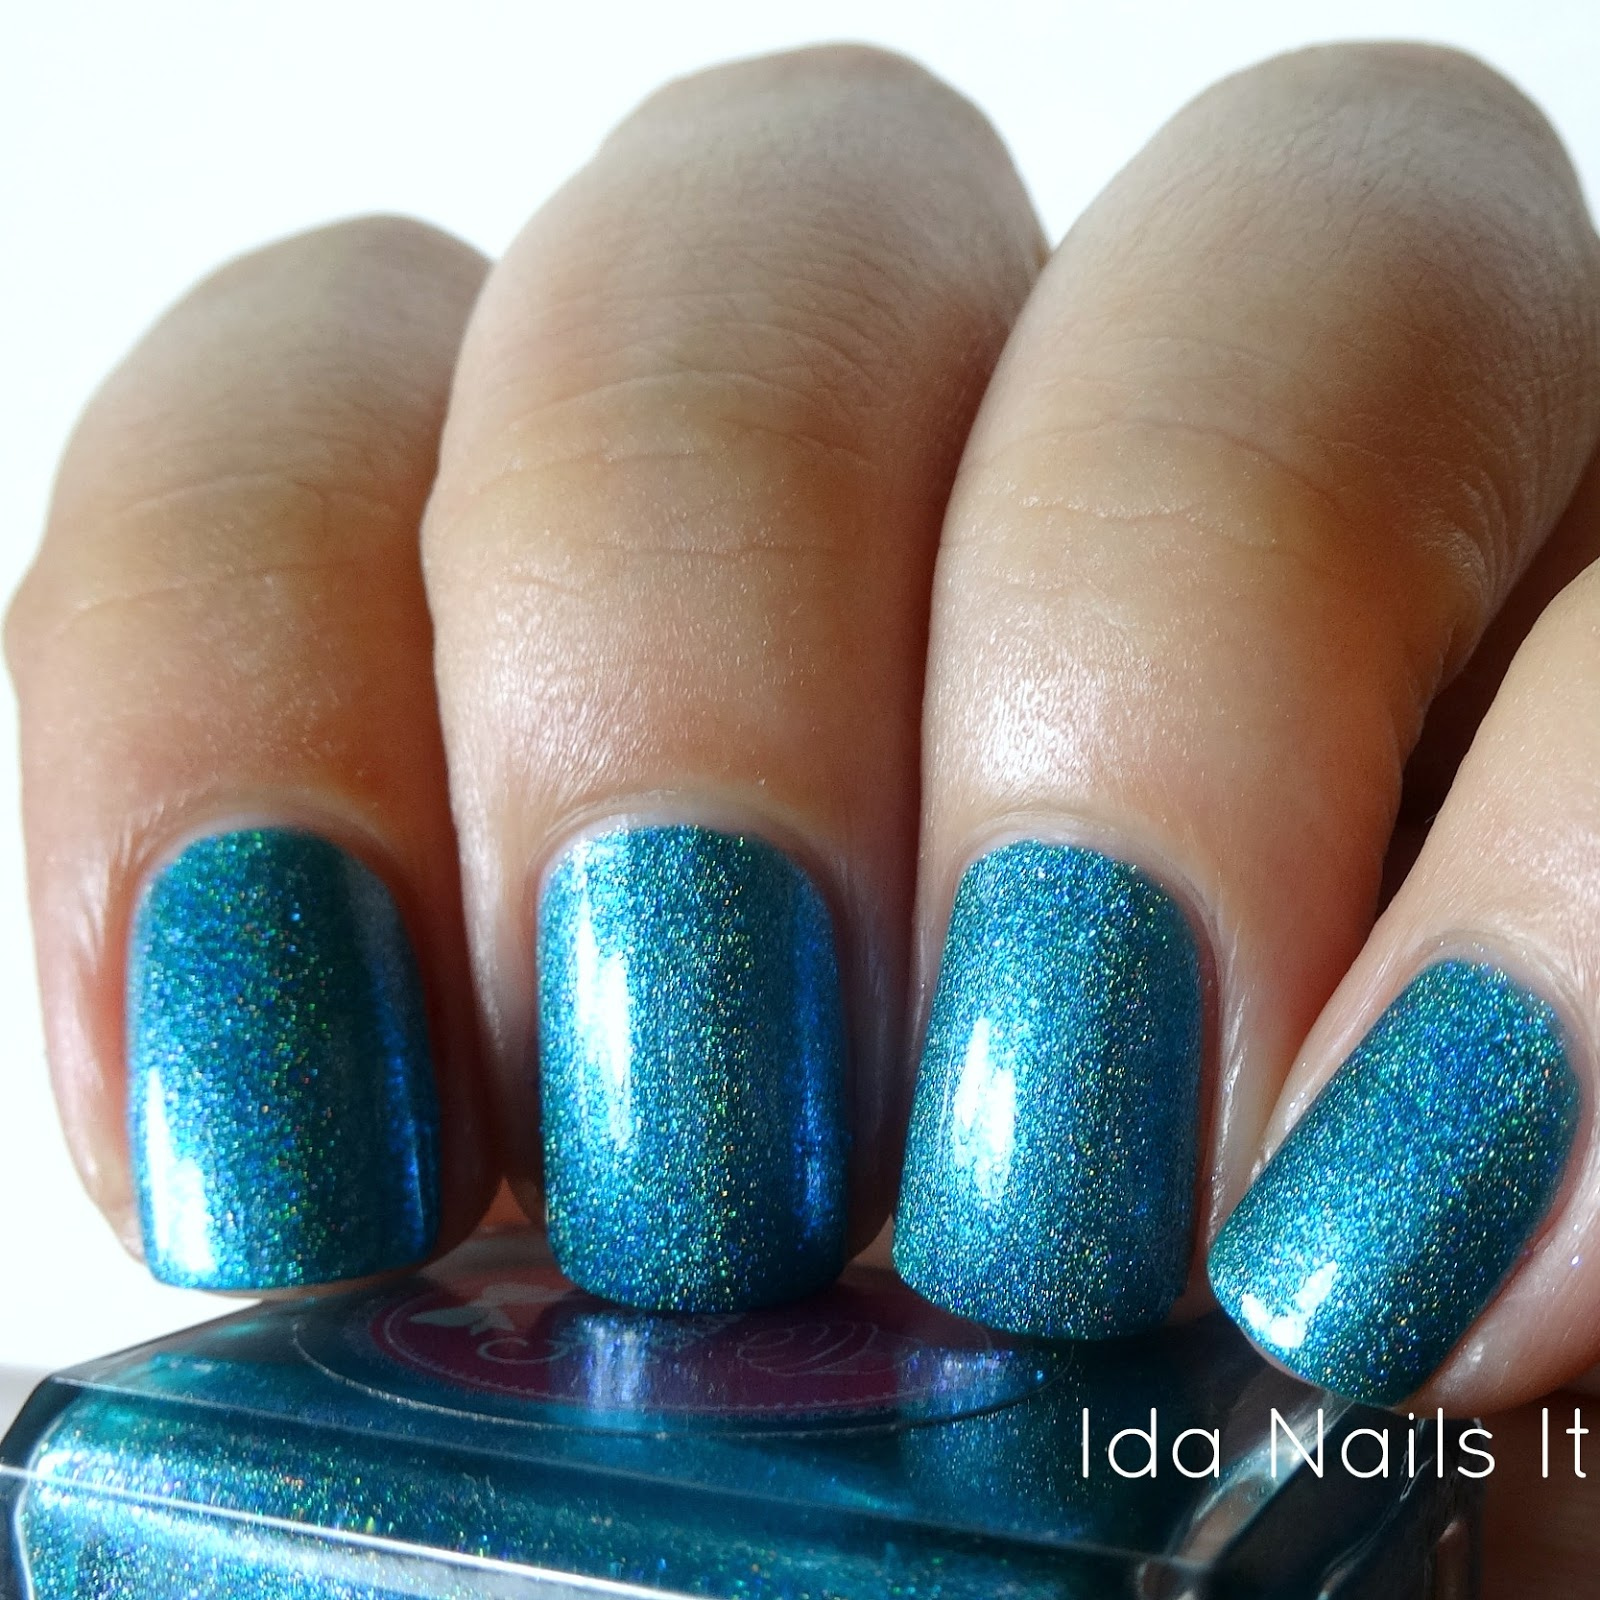 ida nails it cupcake polish luau collection swatches and review